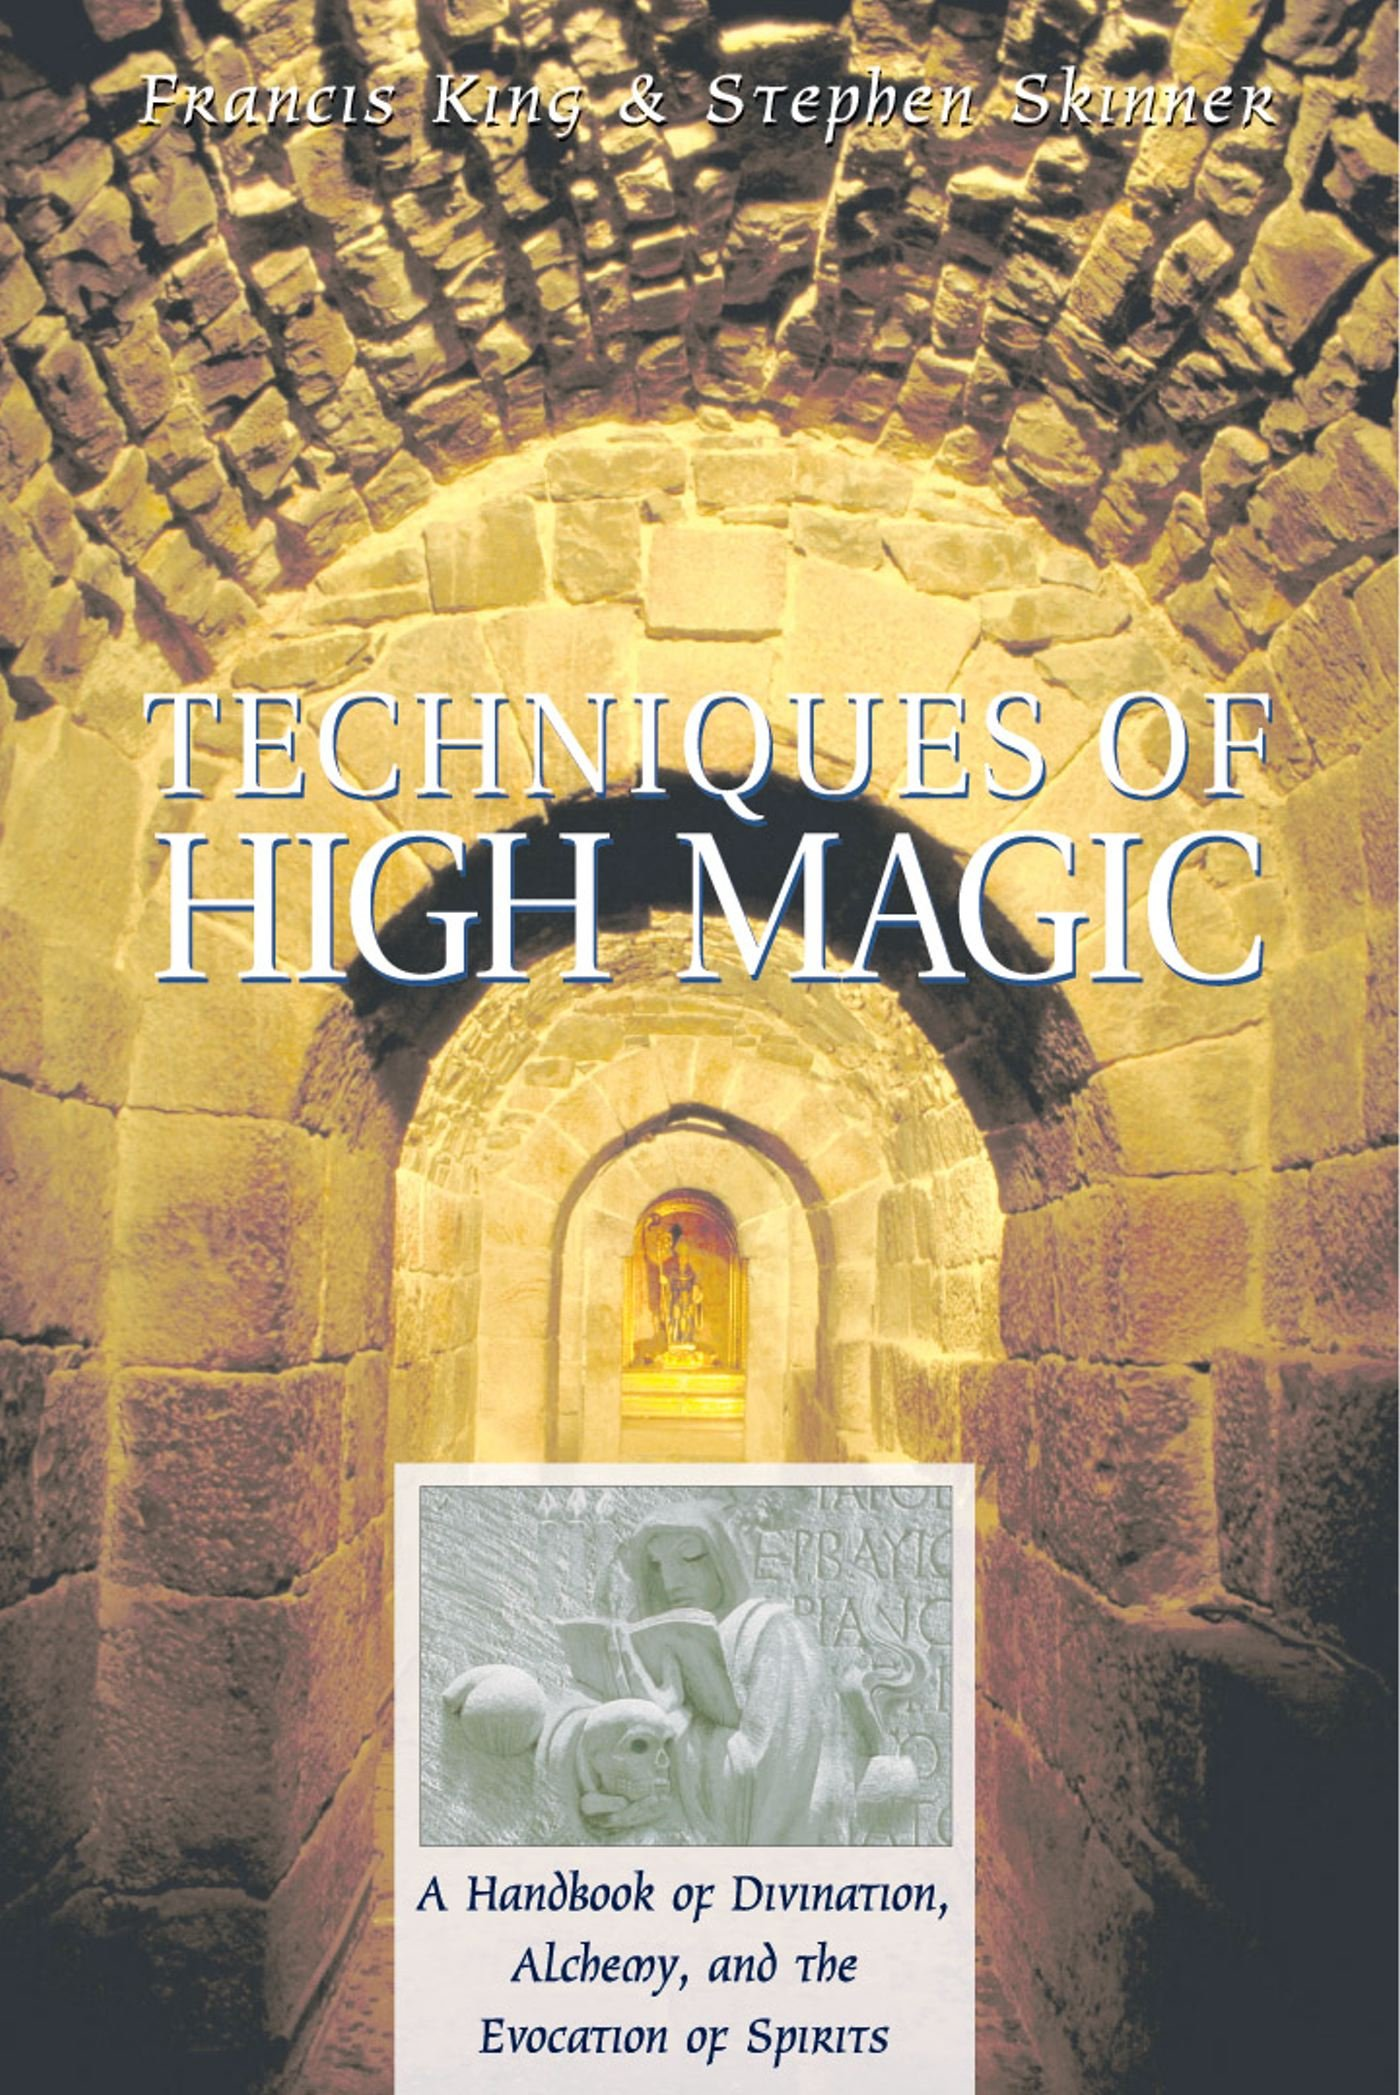 Techniques of High Magic: A Handbook of Divination, Alchemy, and the Evocation of Spirits ebook